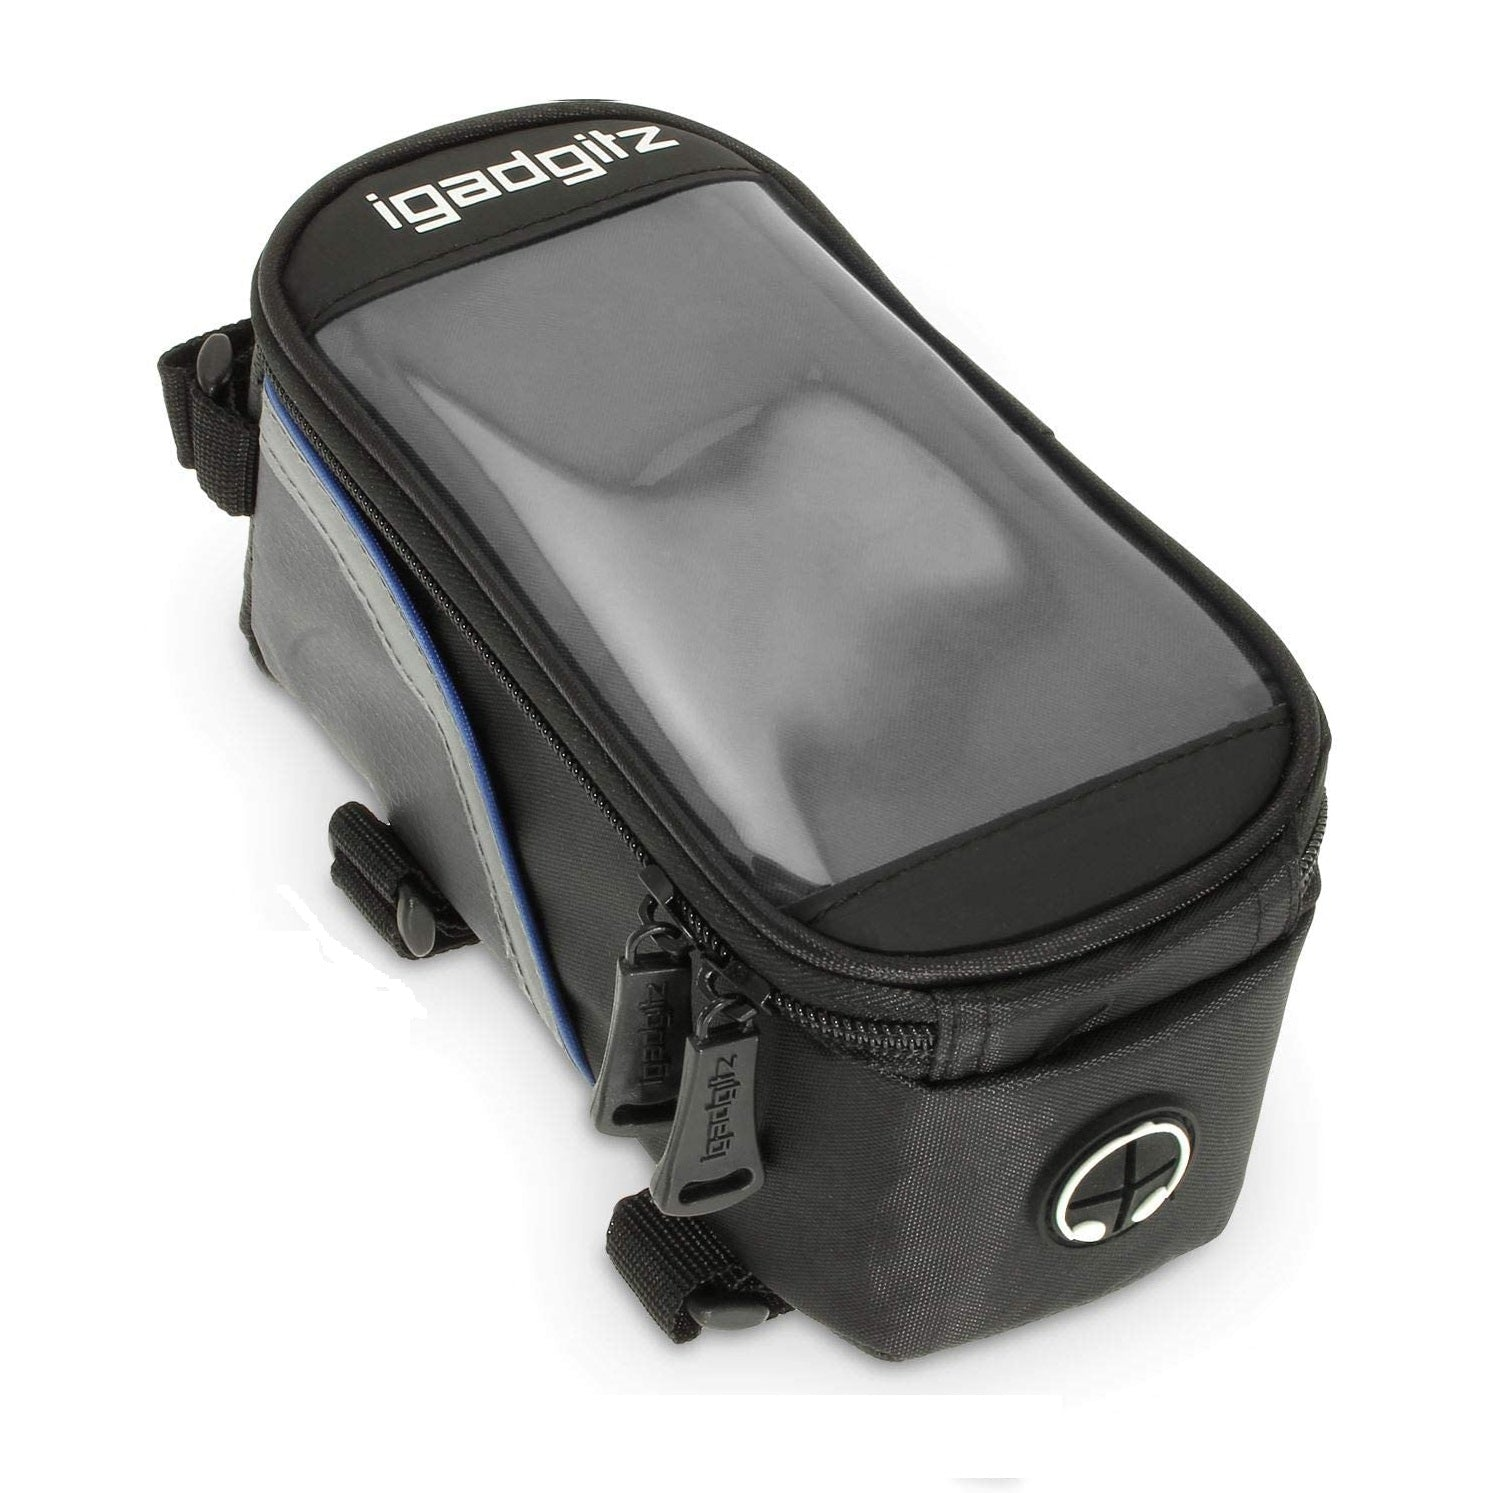 iGadgitz Reflective Water Resistant Front Top Tube Pannier Bike Frame Storage Bag with Phone, iPod, MP3, GPS Holder